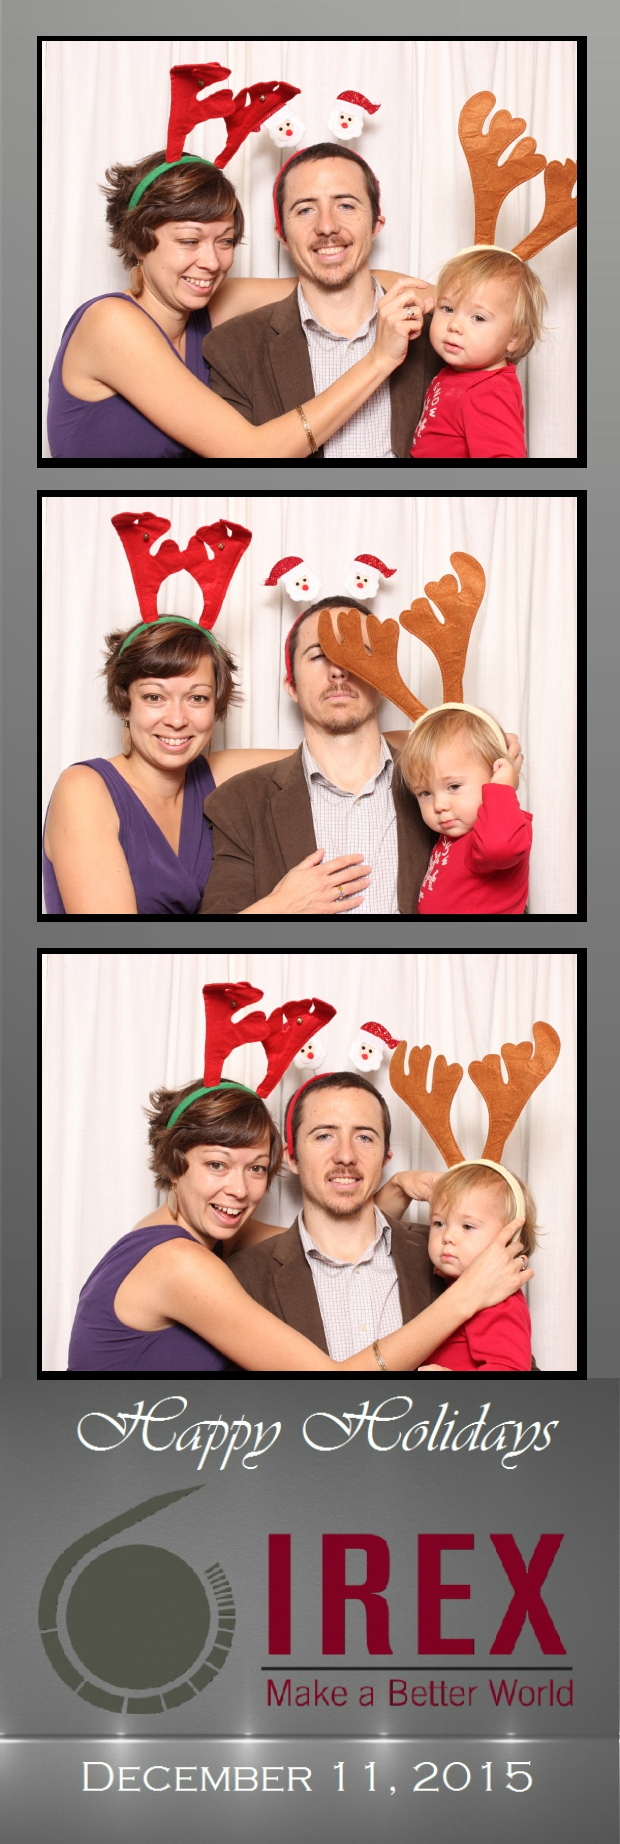 Guest House Events Photo Booth Strips IREX (81).jpg